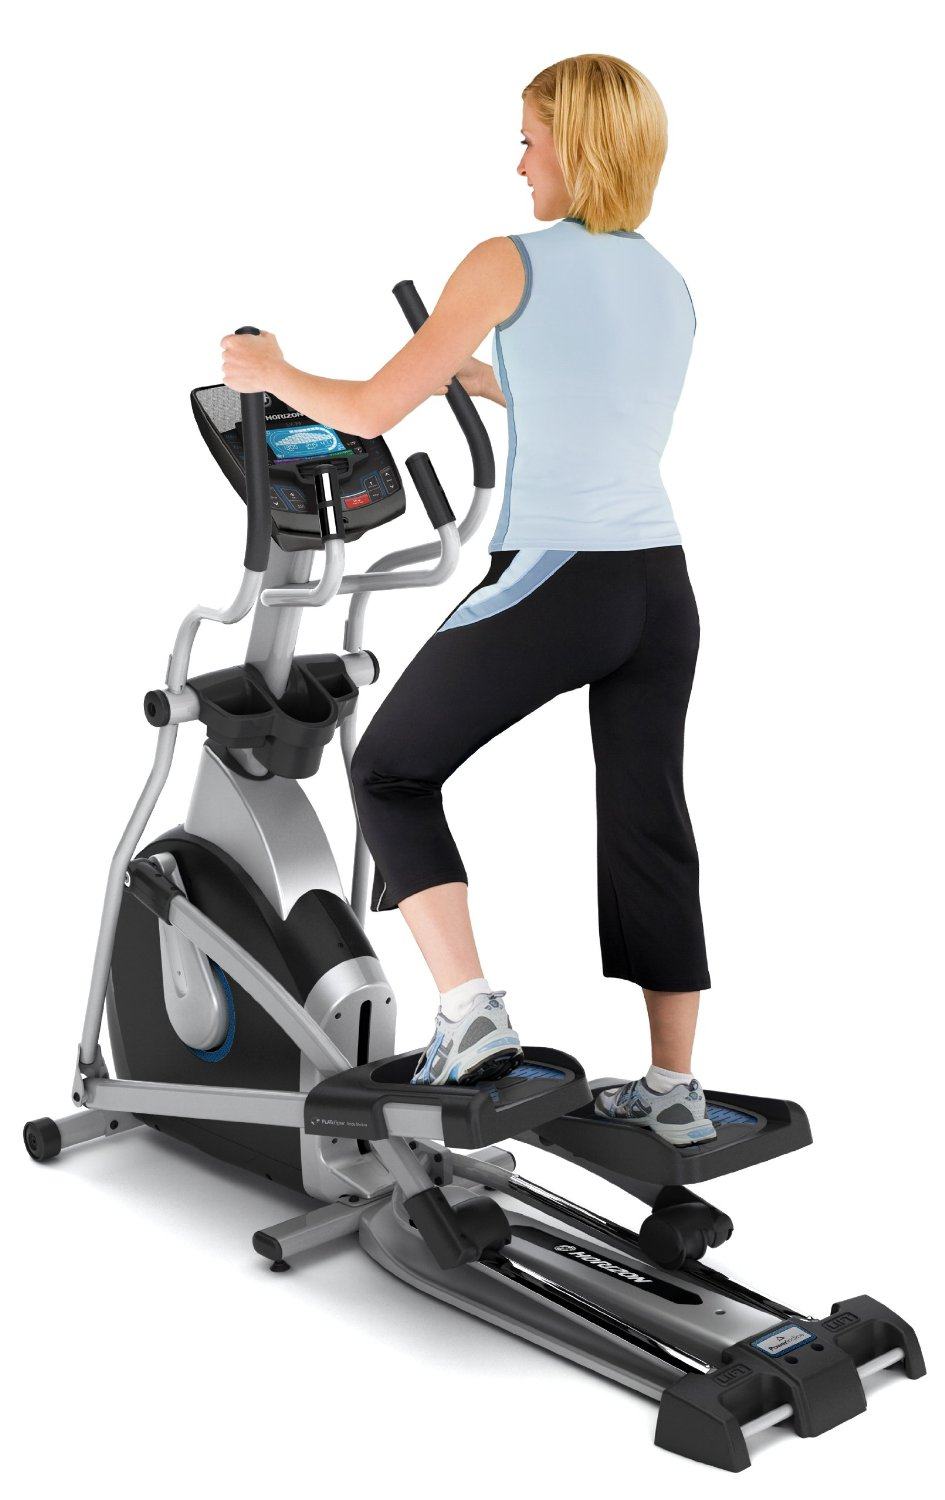 Best home elliptical machine review co